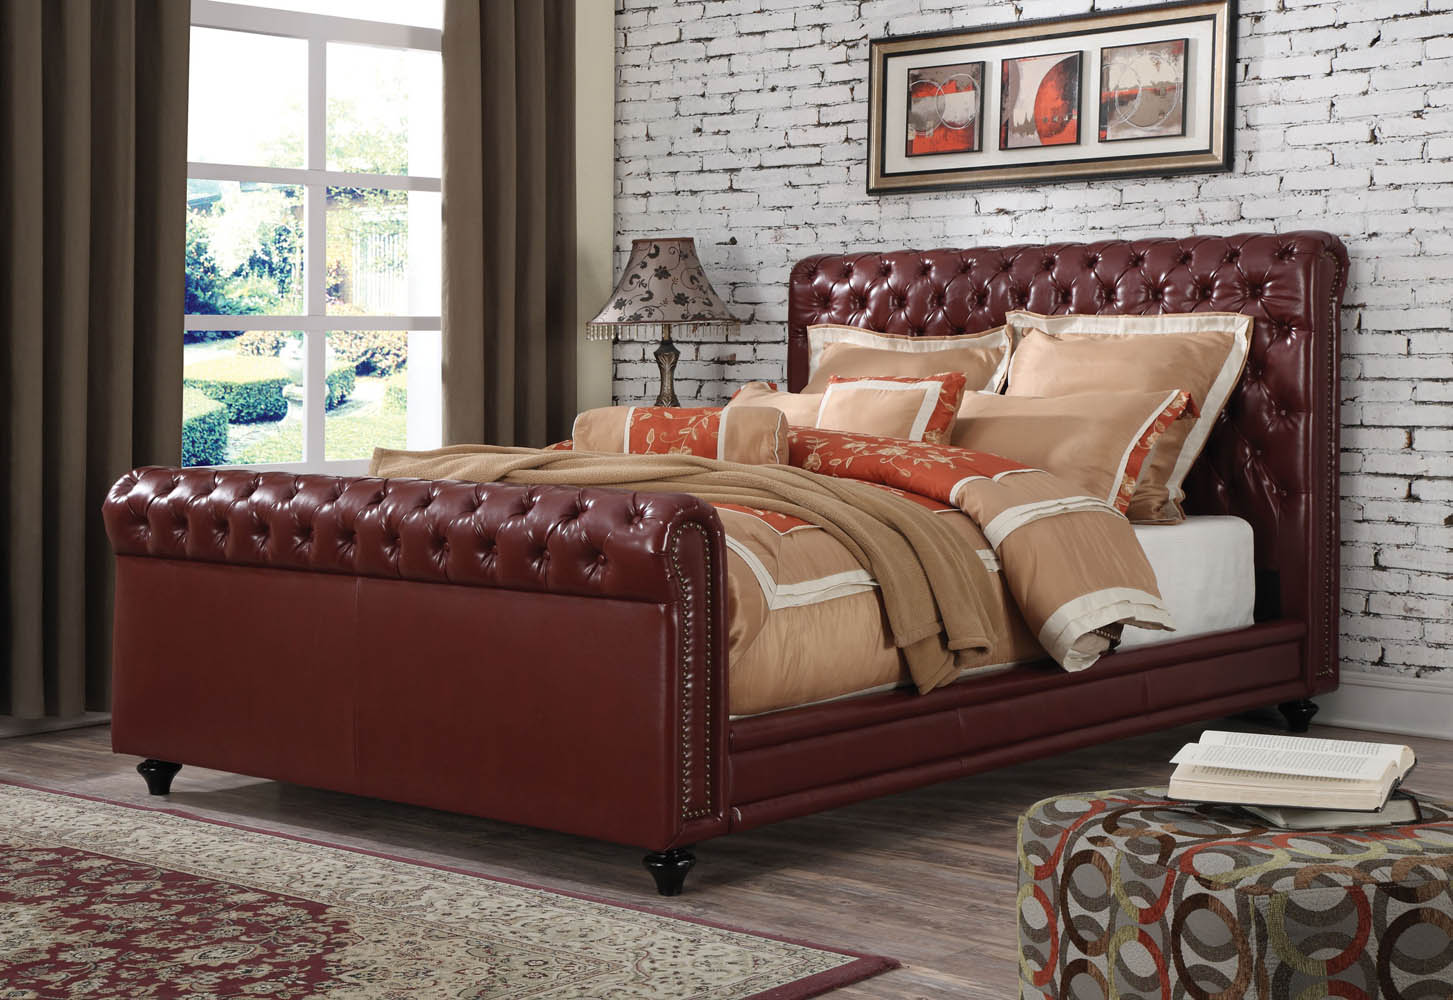 Burgundy leather upholstered queen bed frame for Upholstered queen bed frame